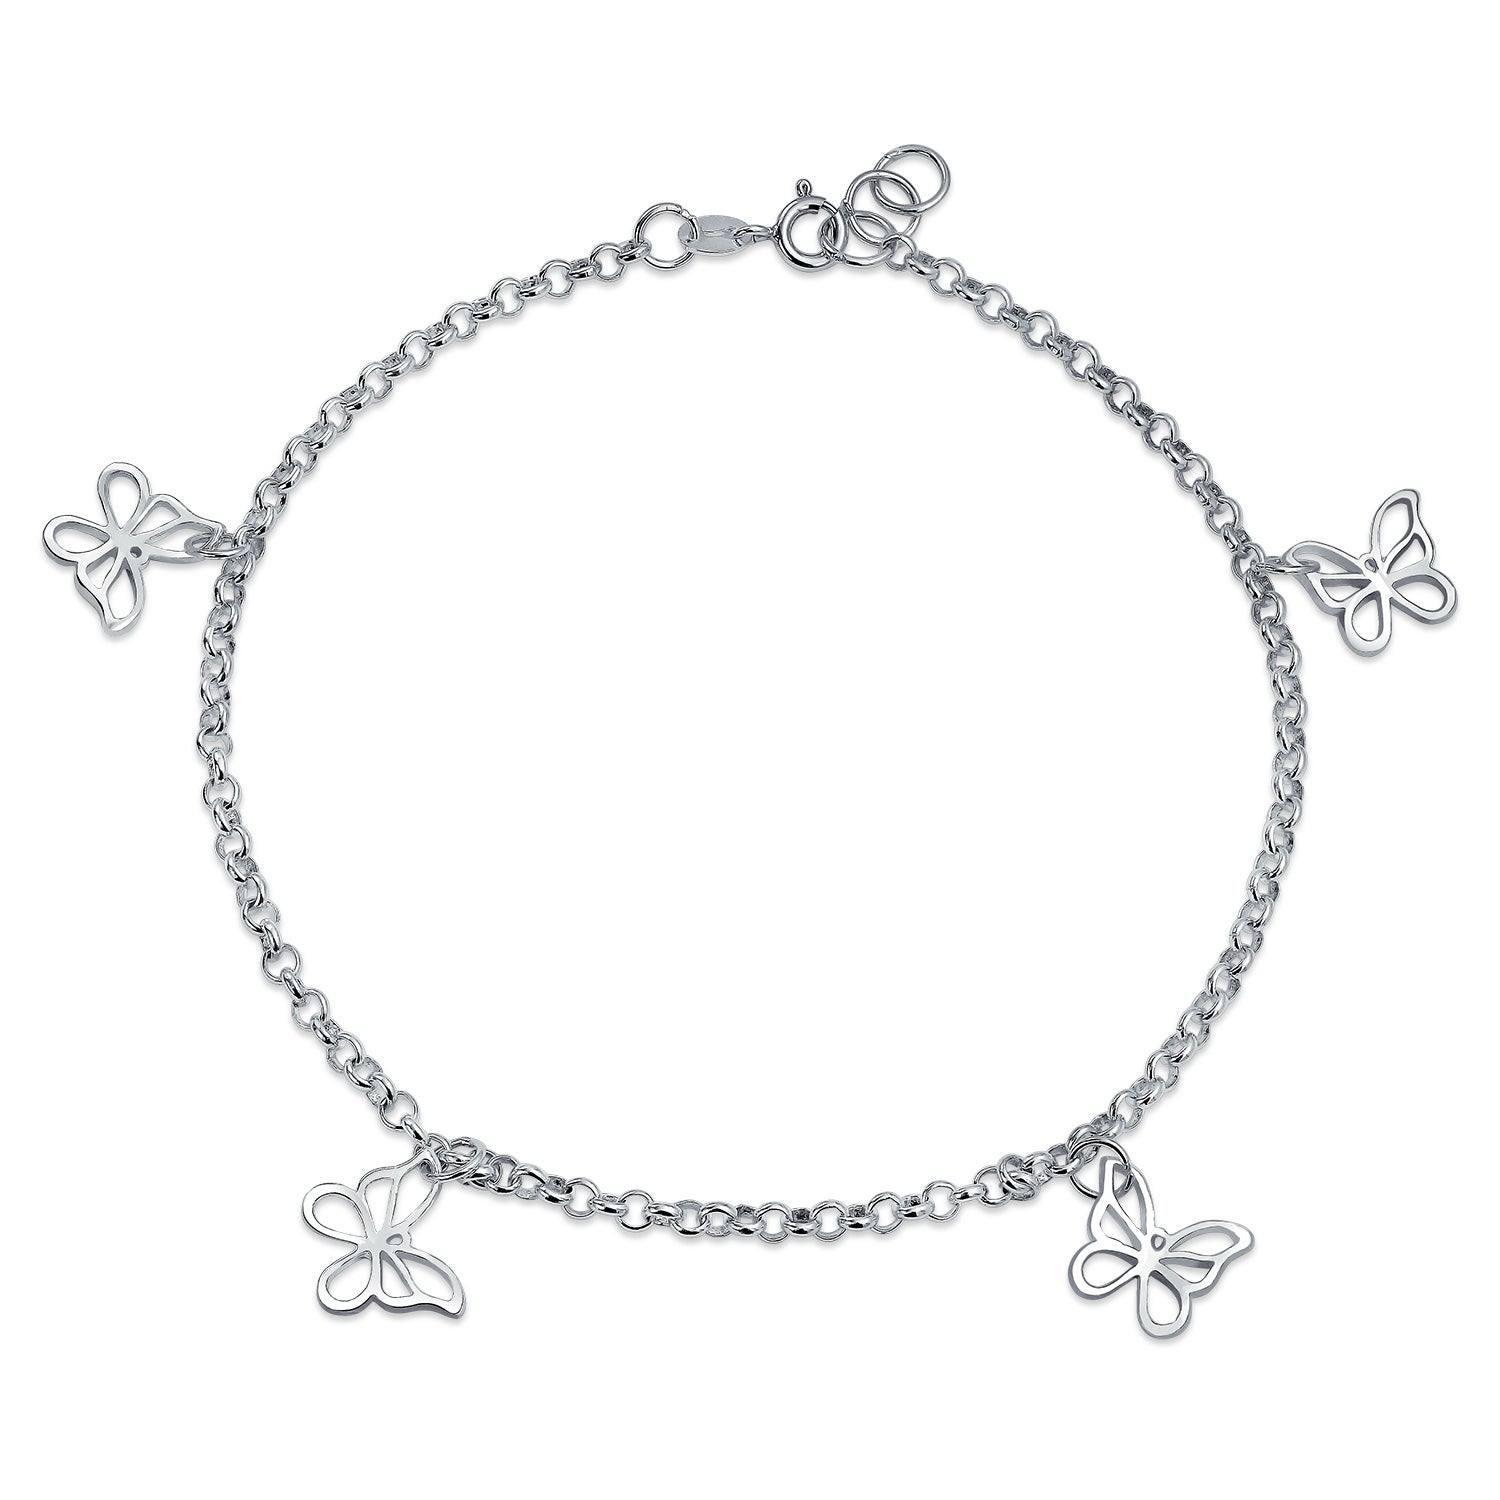 Fine Anklets Jewelry & Watches *sterling Silver 9.5 Inch 8 Dolphins Charms Anklet Bracelet Grade Products According To Quality